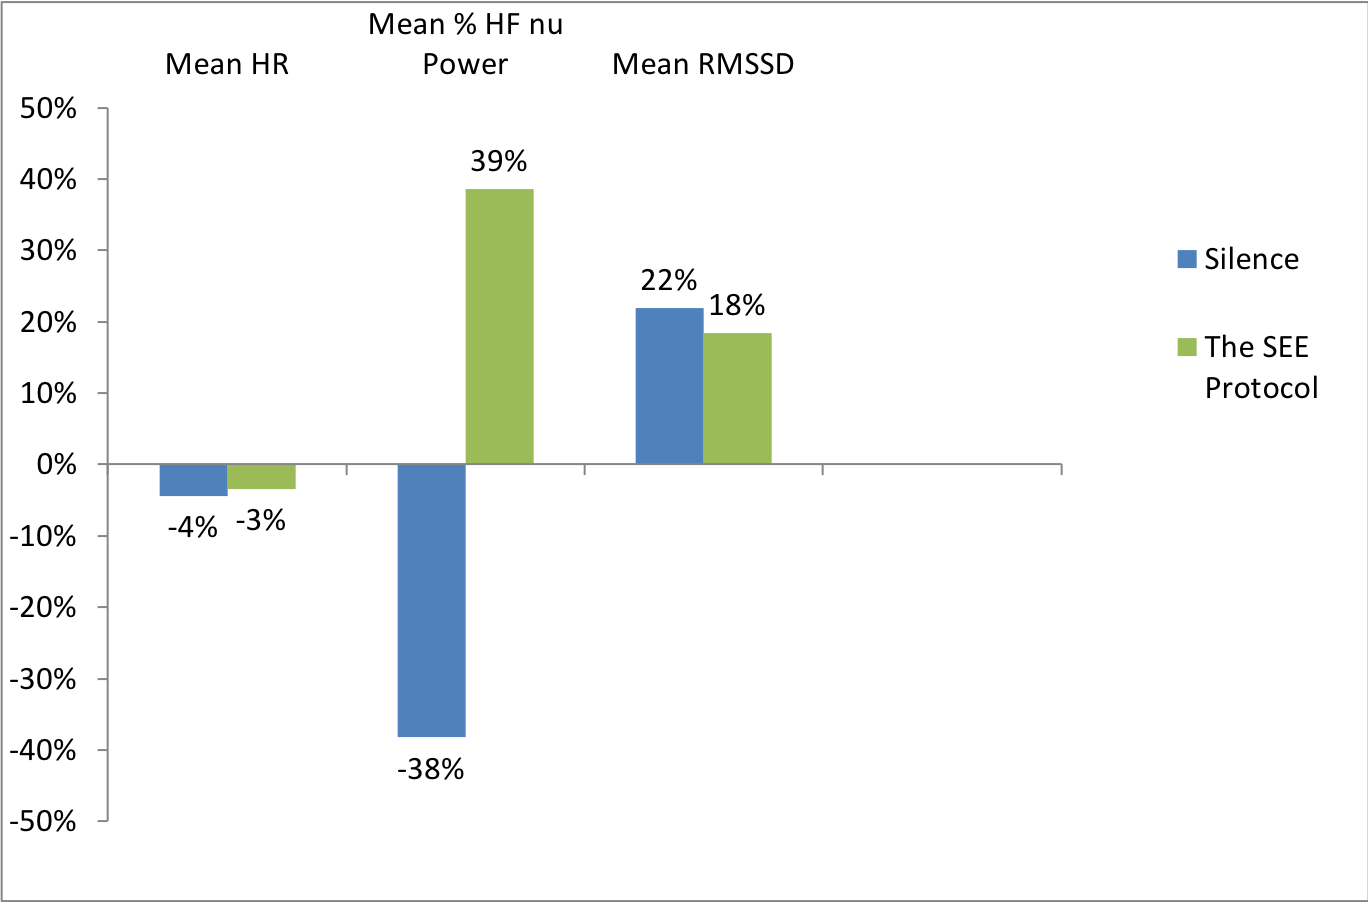 HRV Changes in the SEE Protocol vs Silence